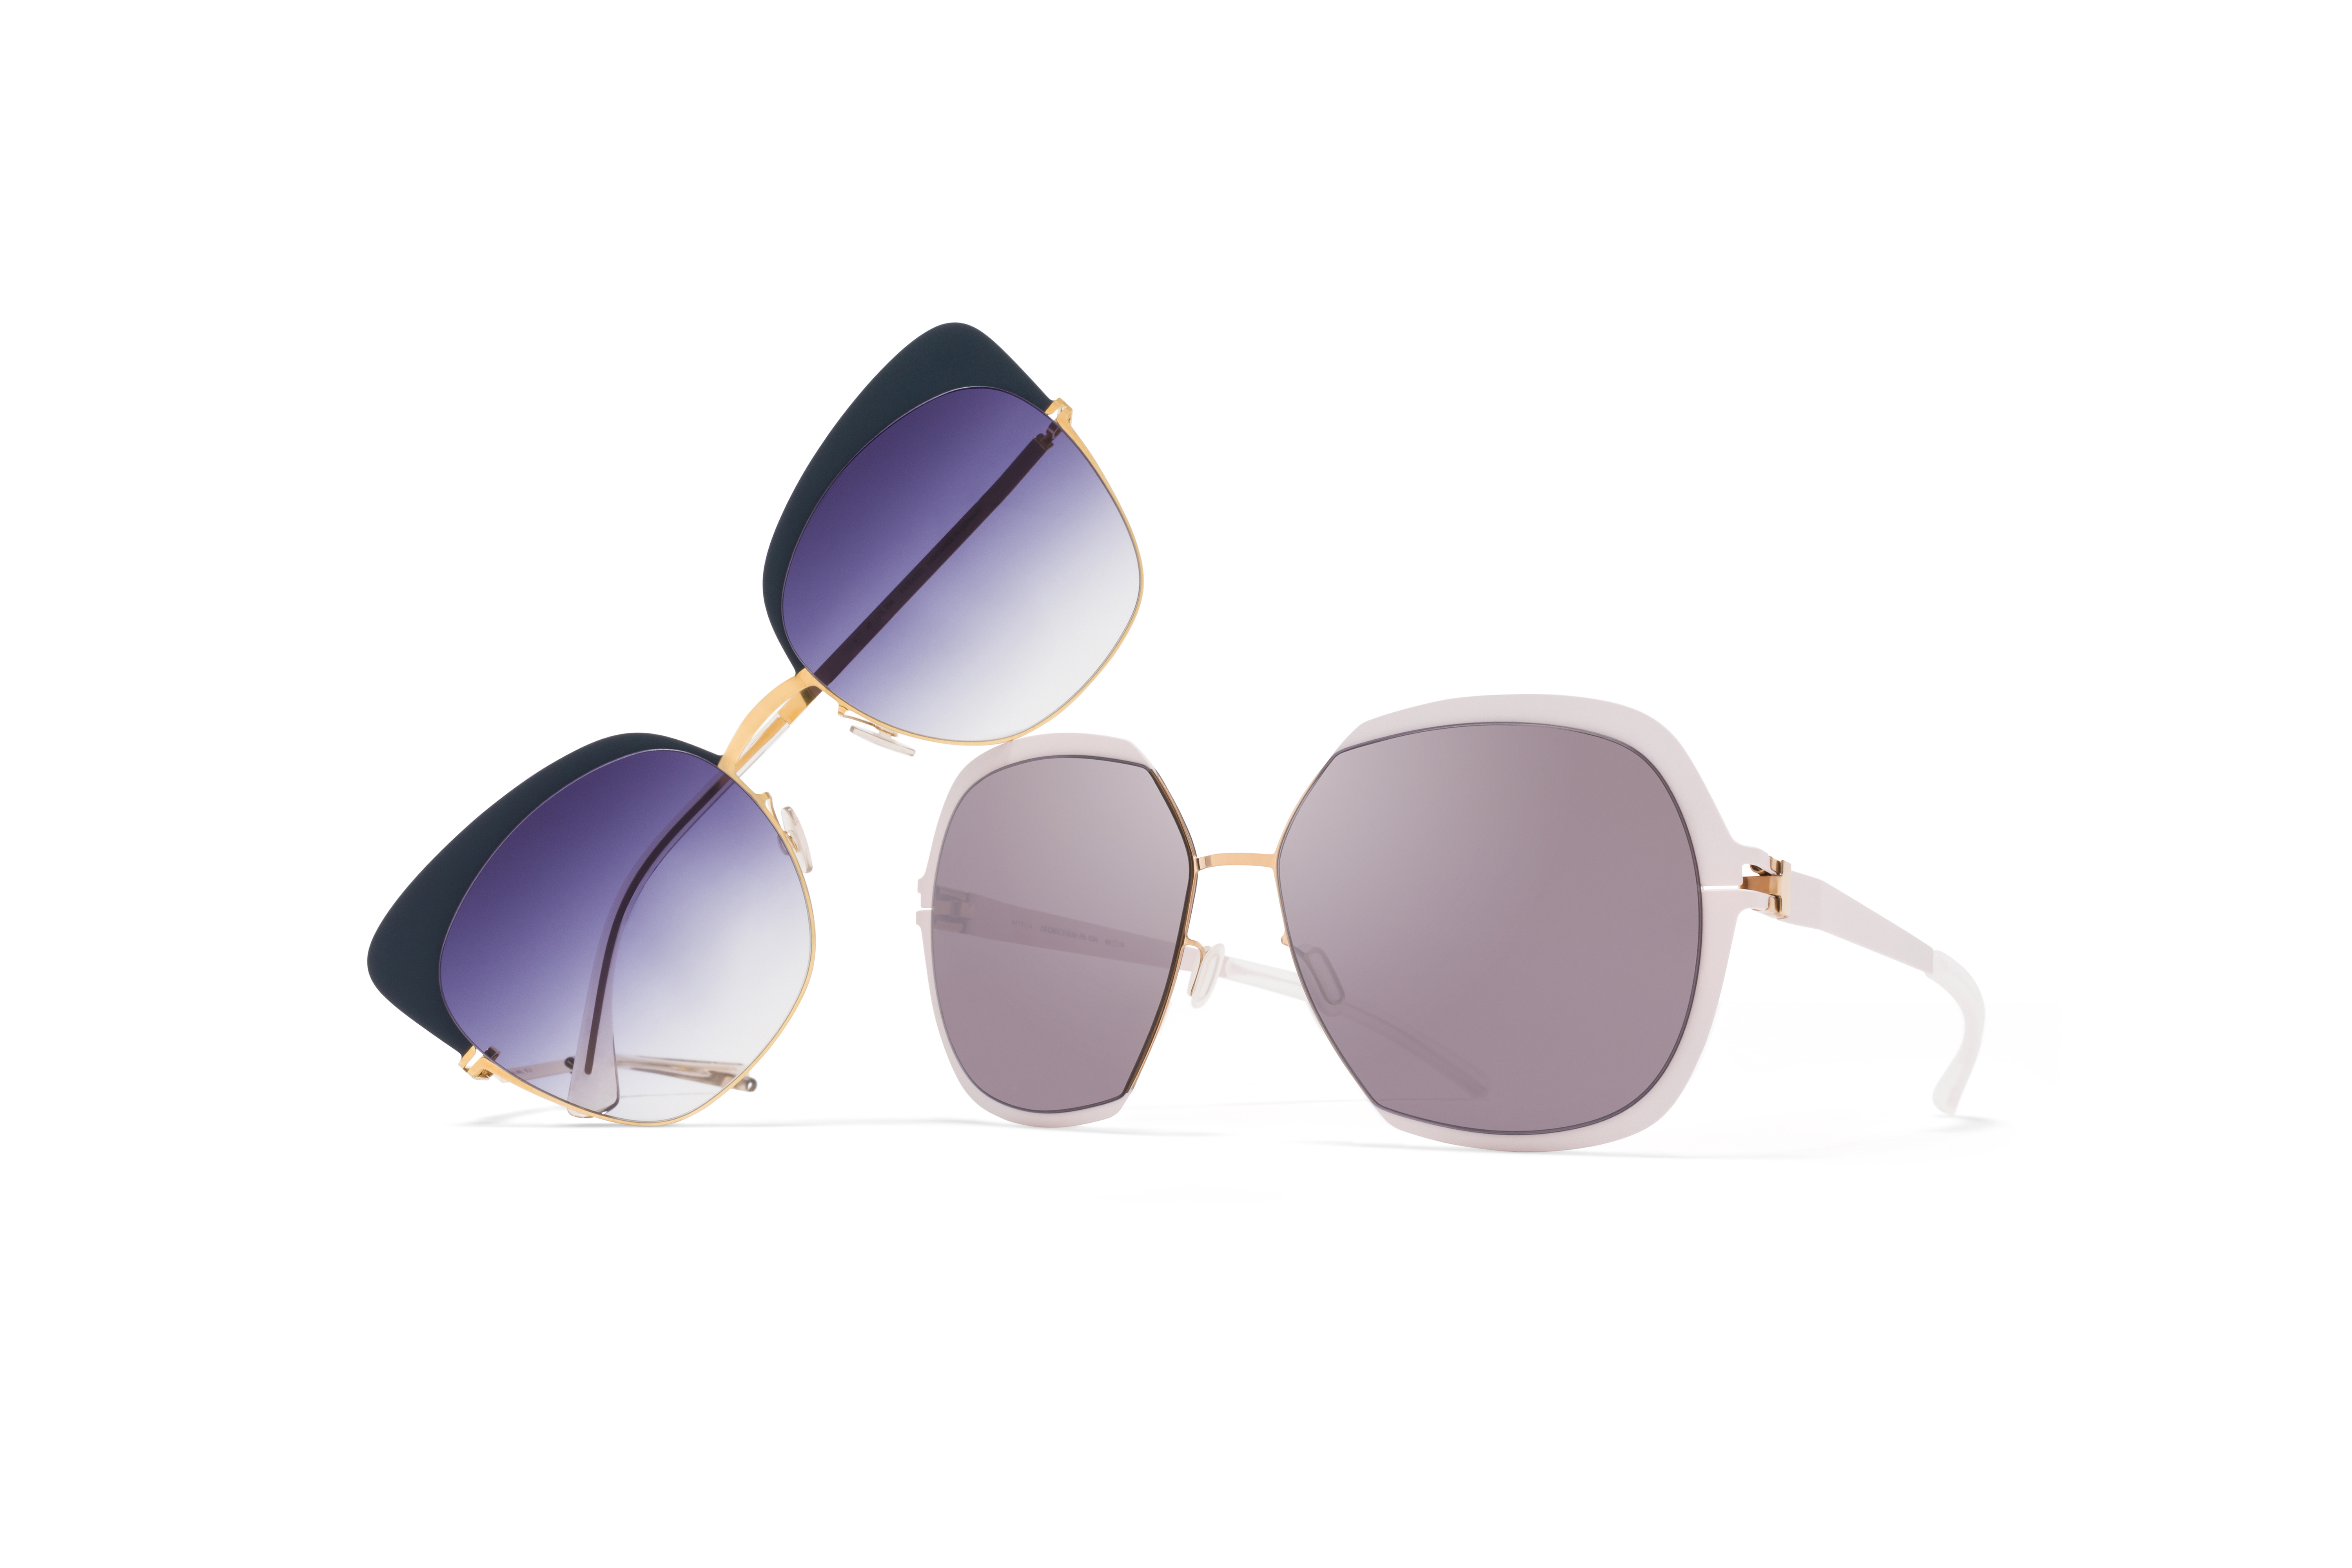 MYKITA Decades Sunglasses Anneli Felicia